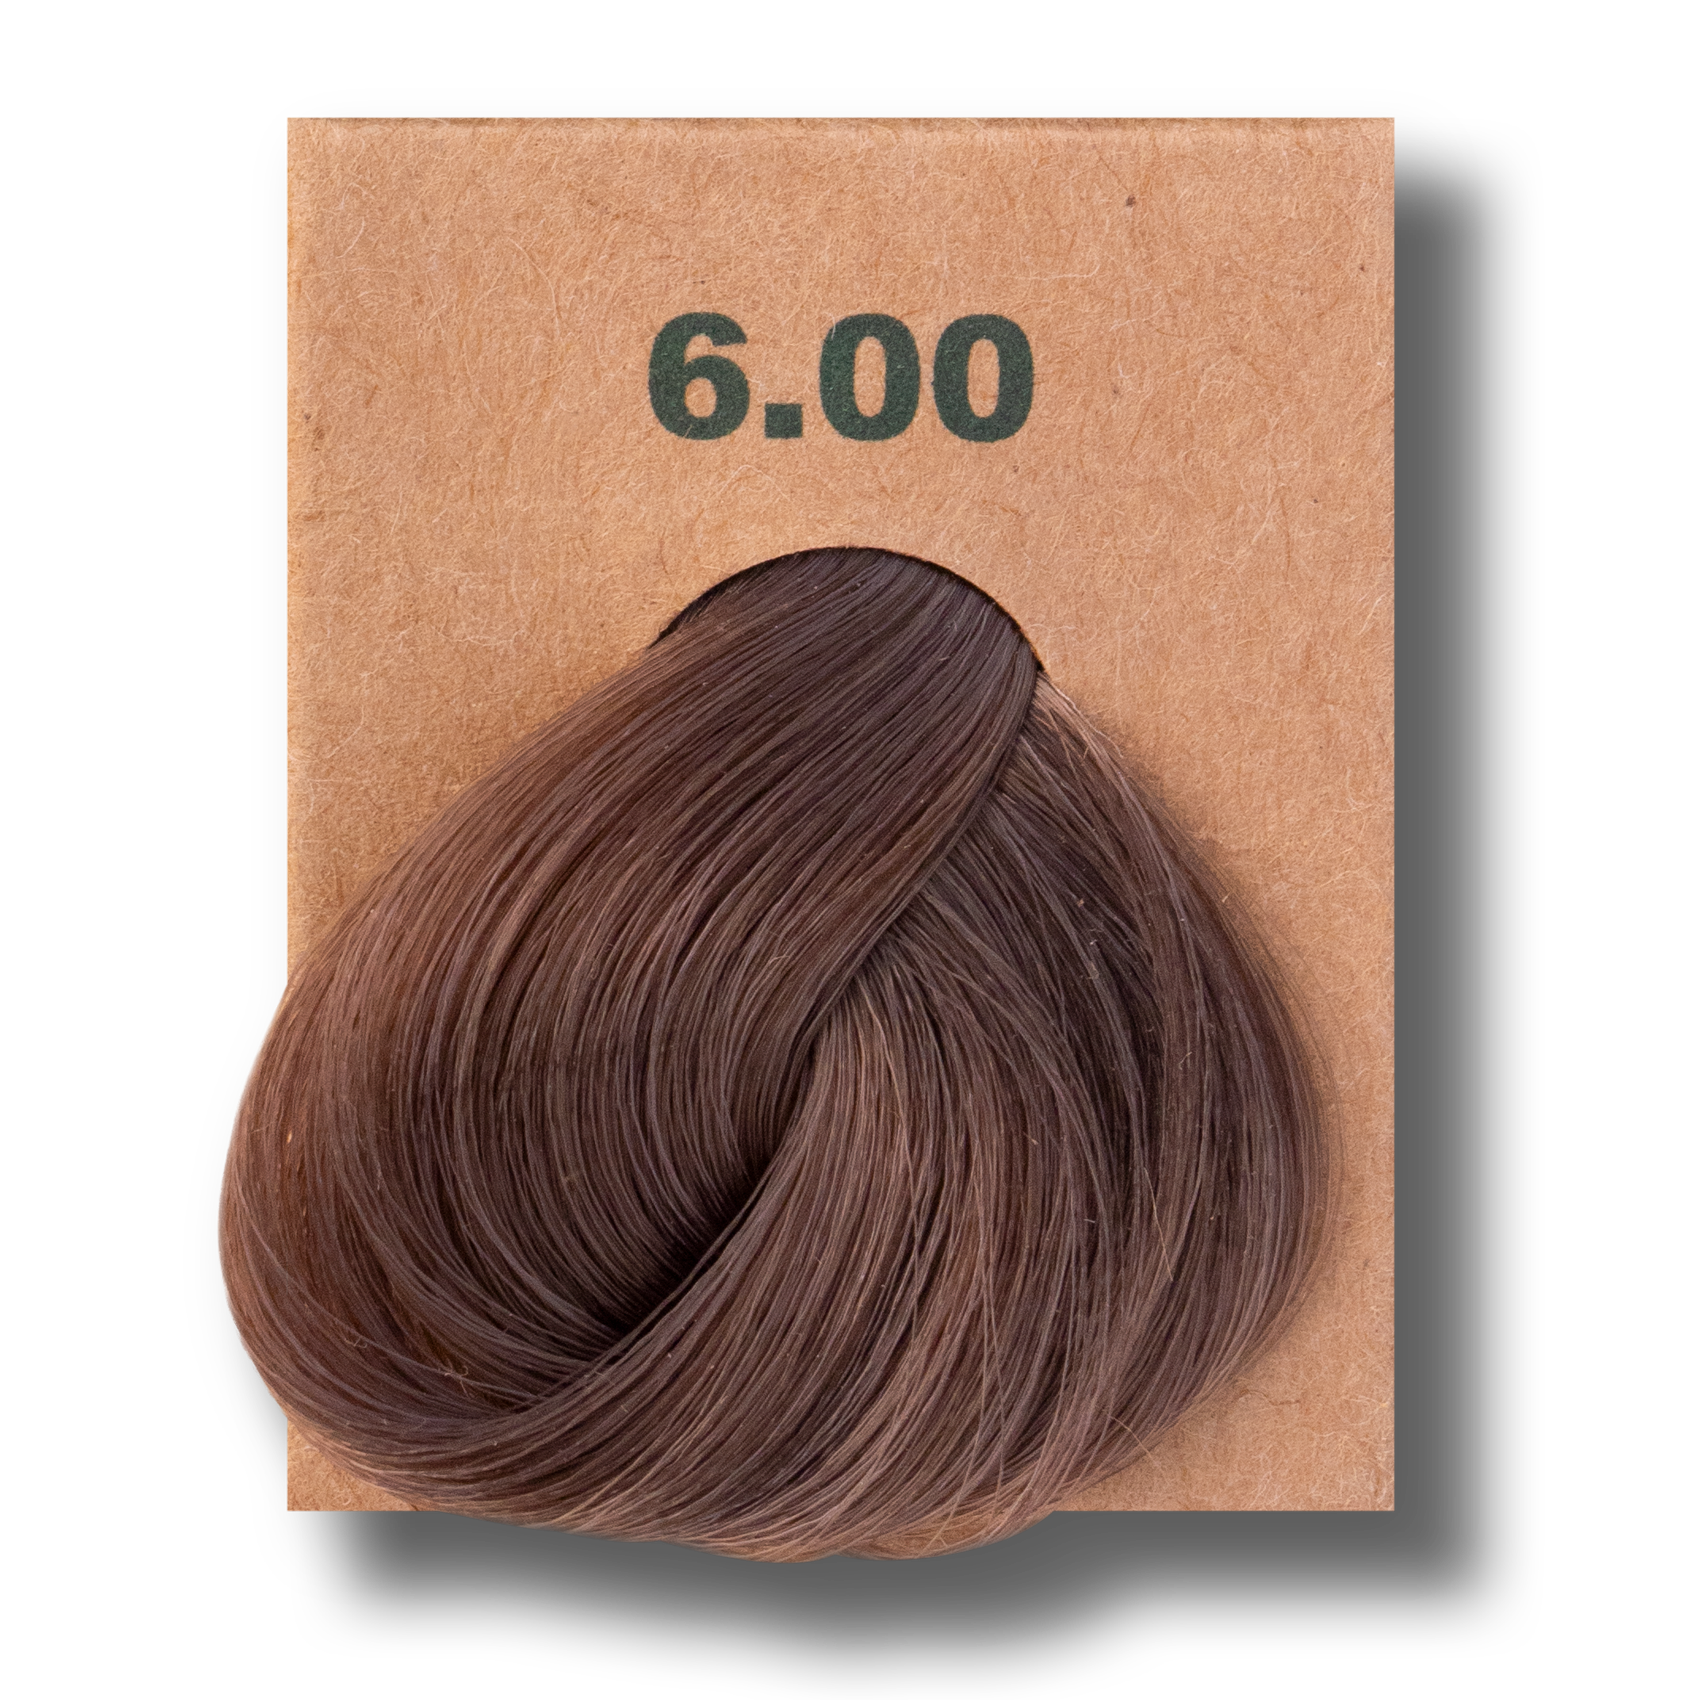 Vopsea de par  fara amoniac BioMagic 6.00 Dark Blonde